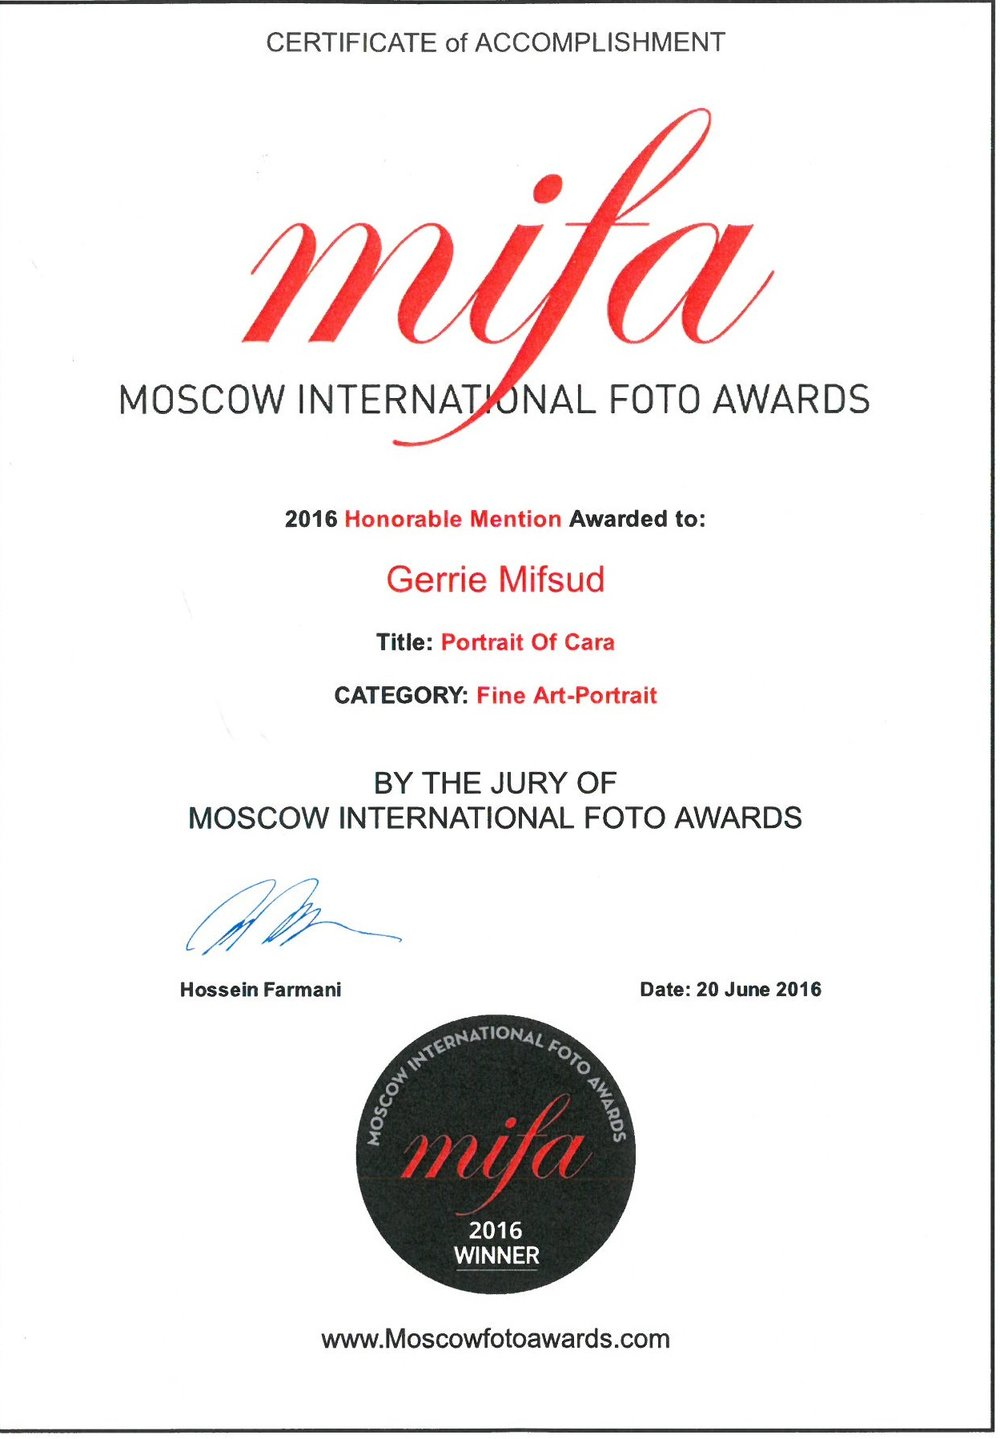 Moscow International Foto Awards 2016.jpg